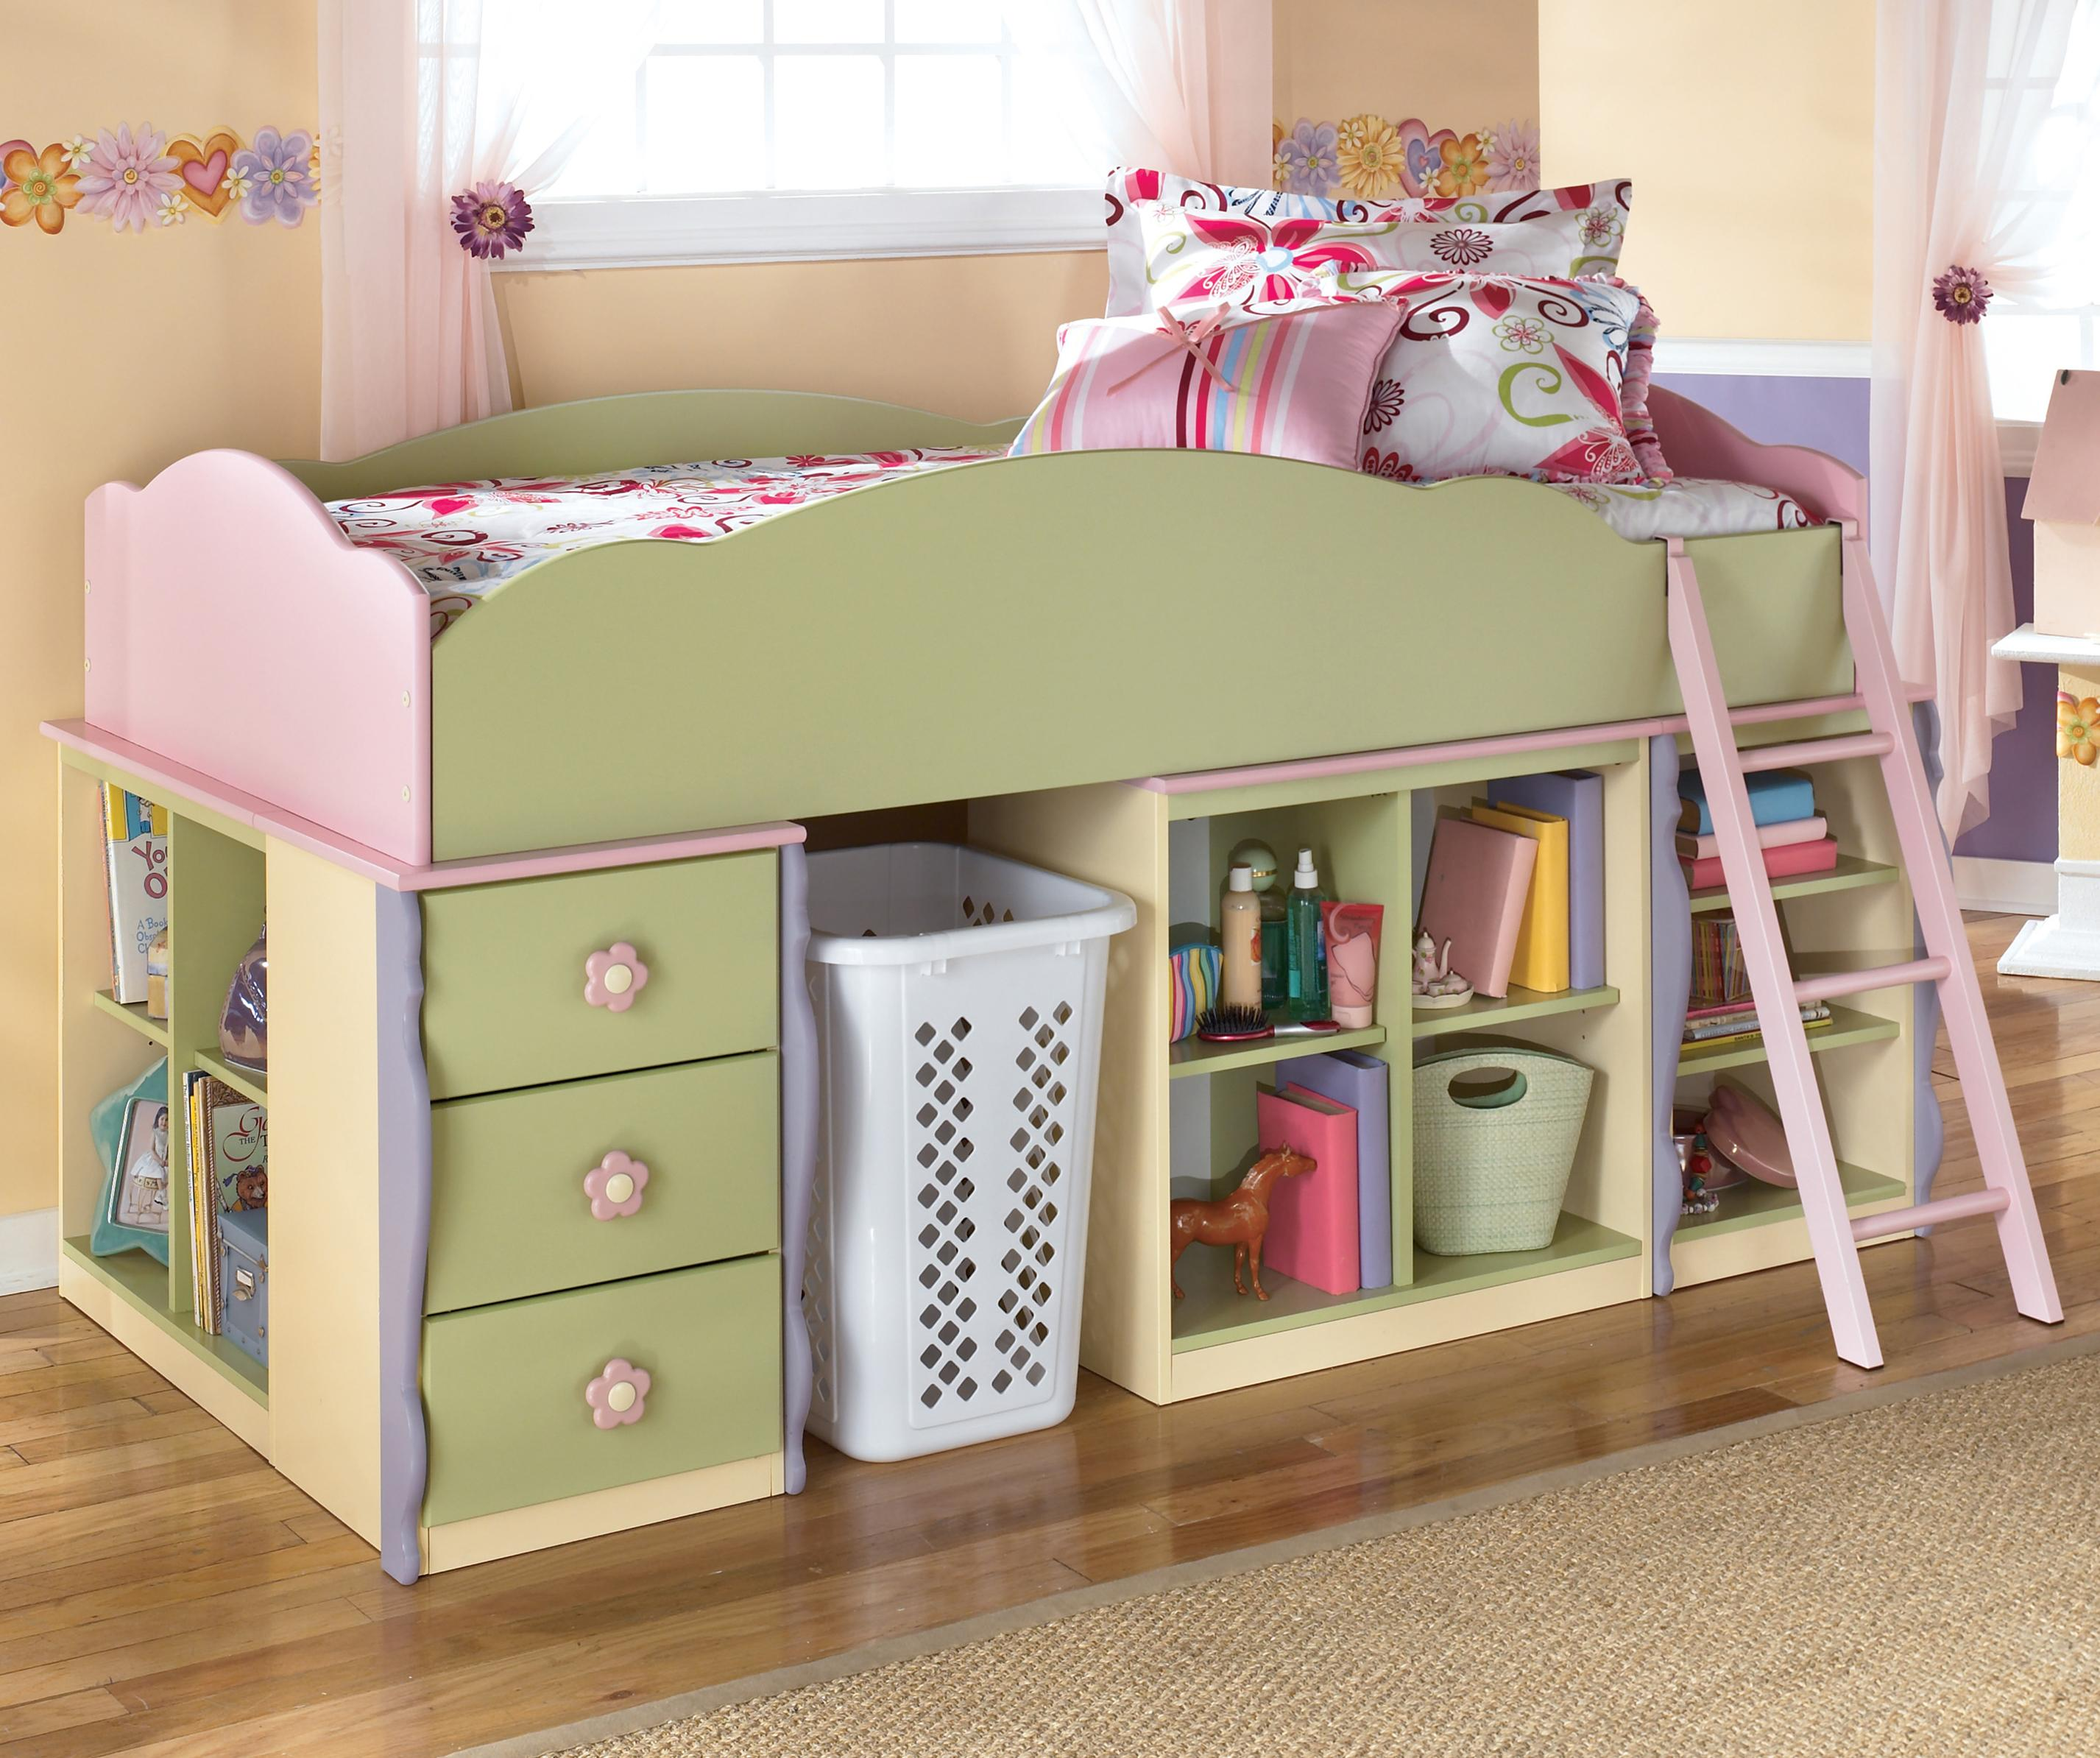 Doll House Loft Bed with Bin Storage & Space for Basket by Signature Design  by Ashley